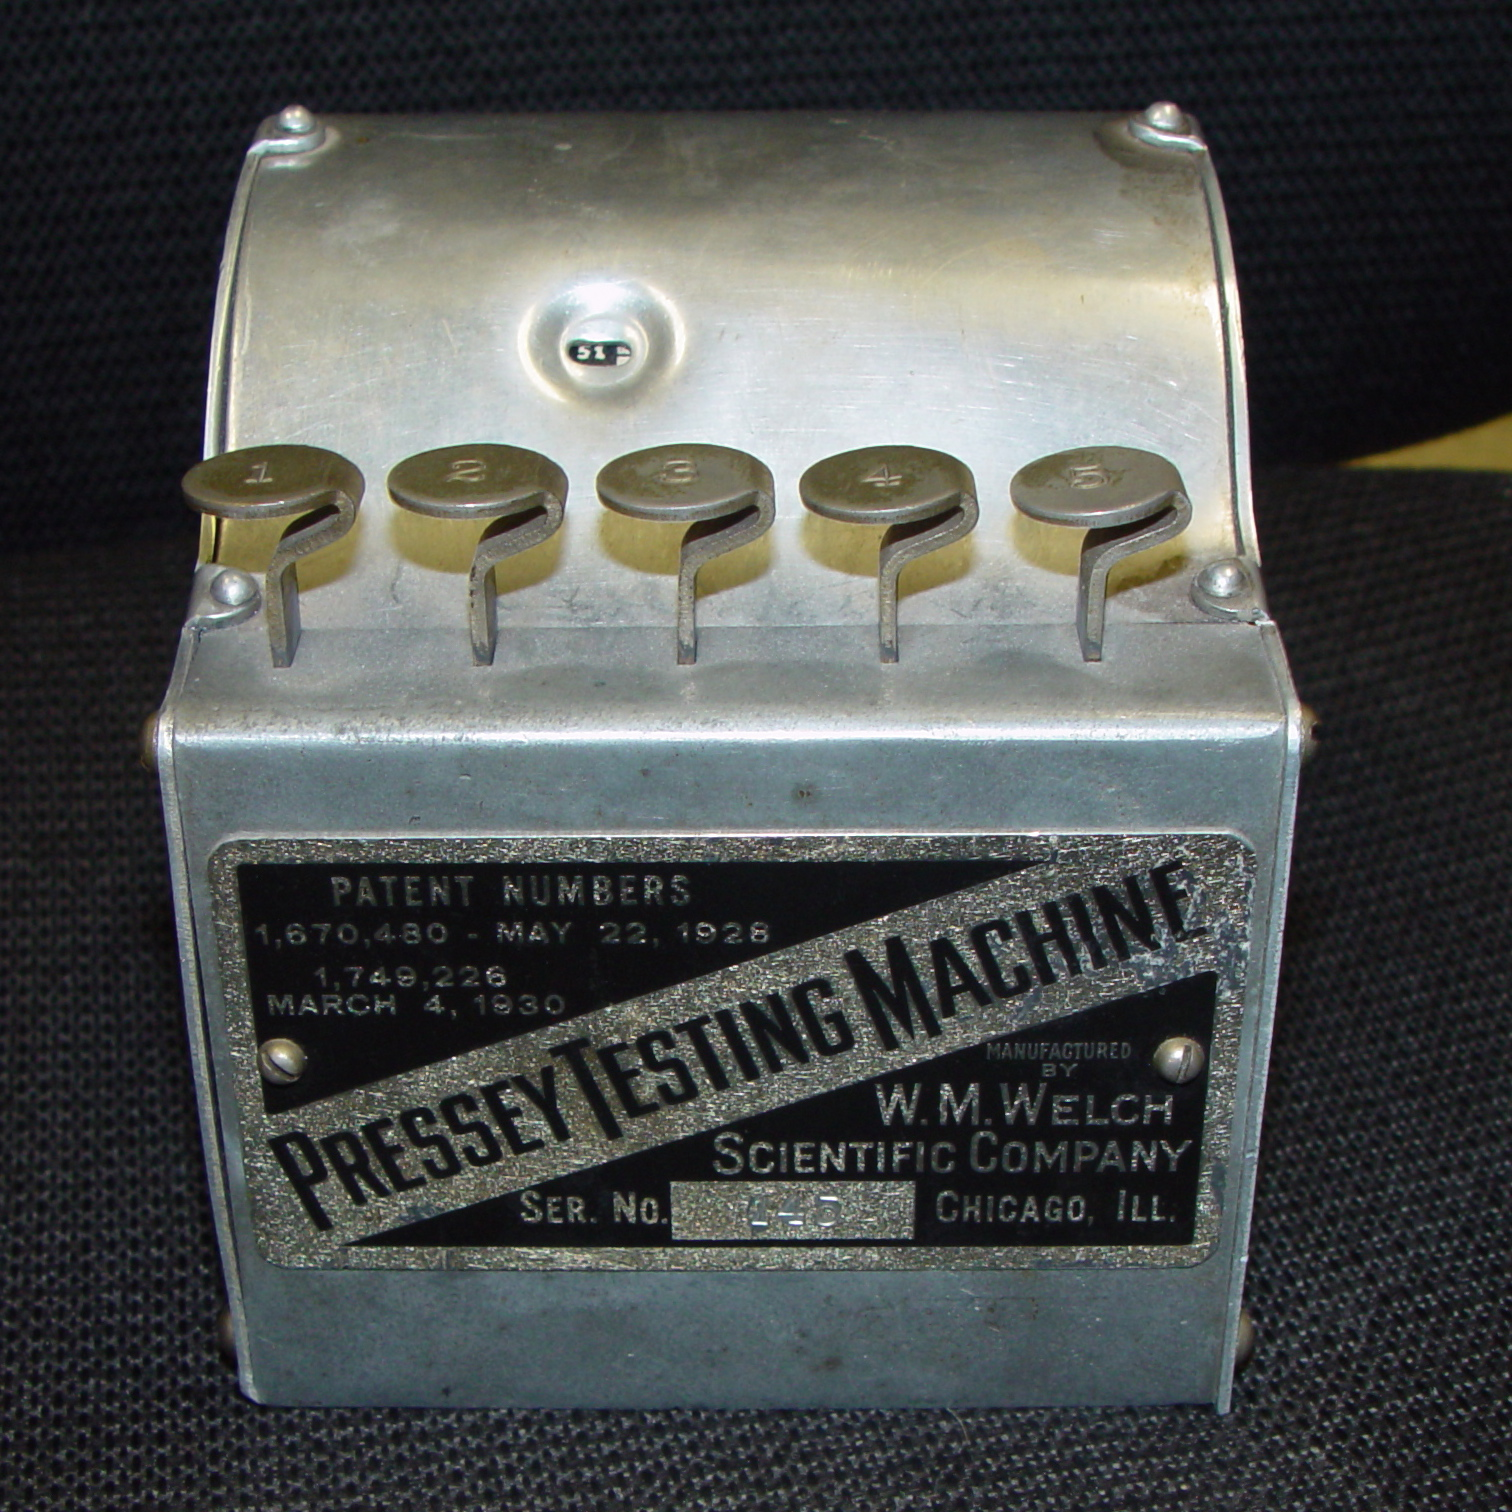 Exterior of Pressey Testing Machine, patent dates 1928 and 1930.